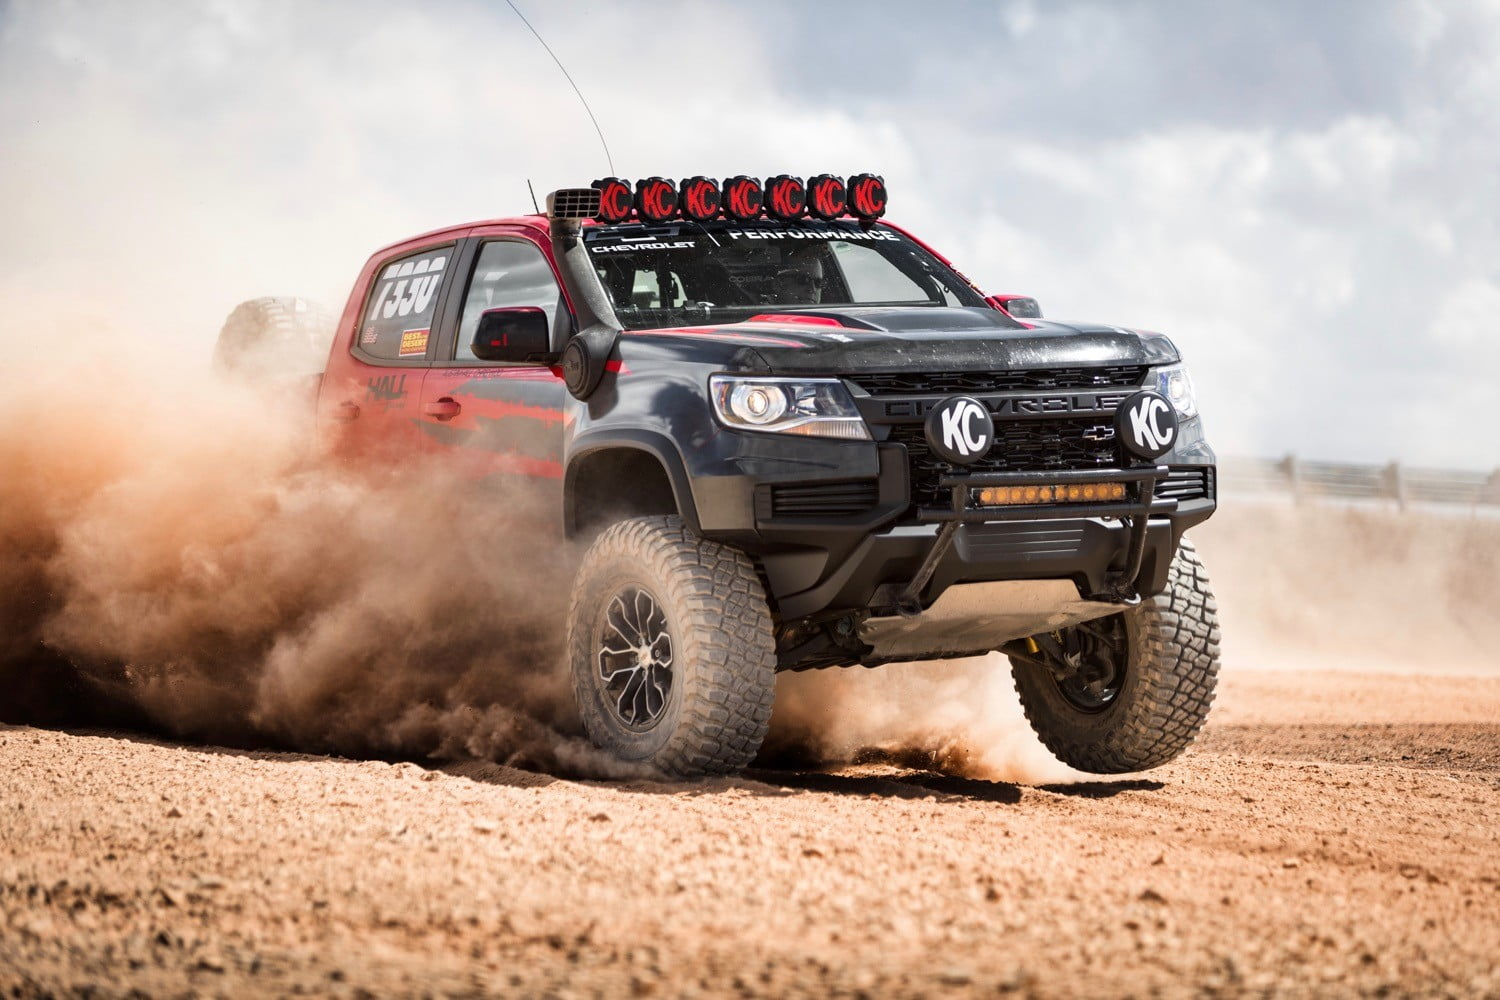 2021 chevrolet colorado pickup truck photos and specs zr2 race